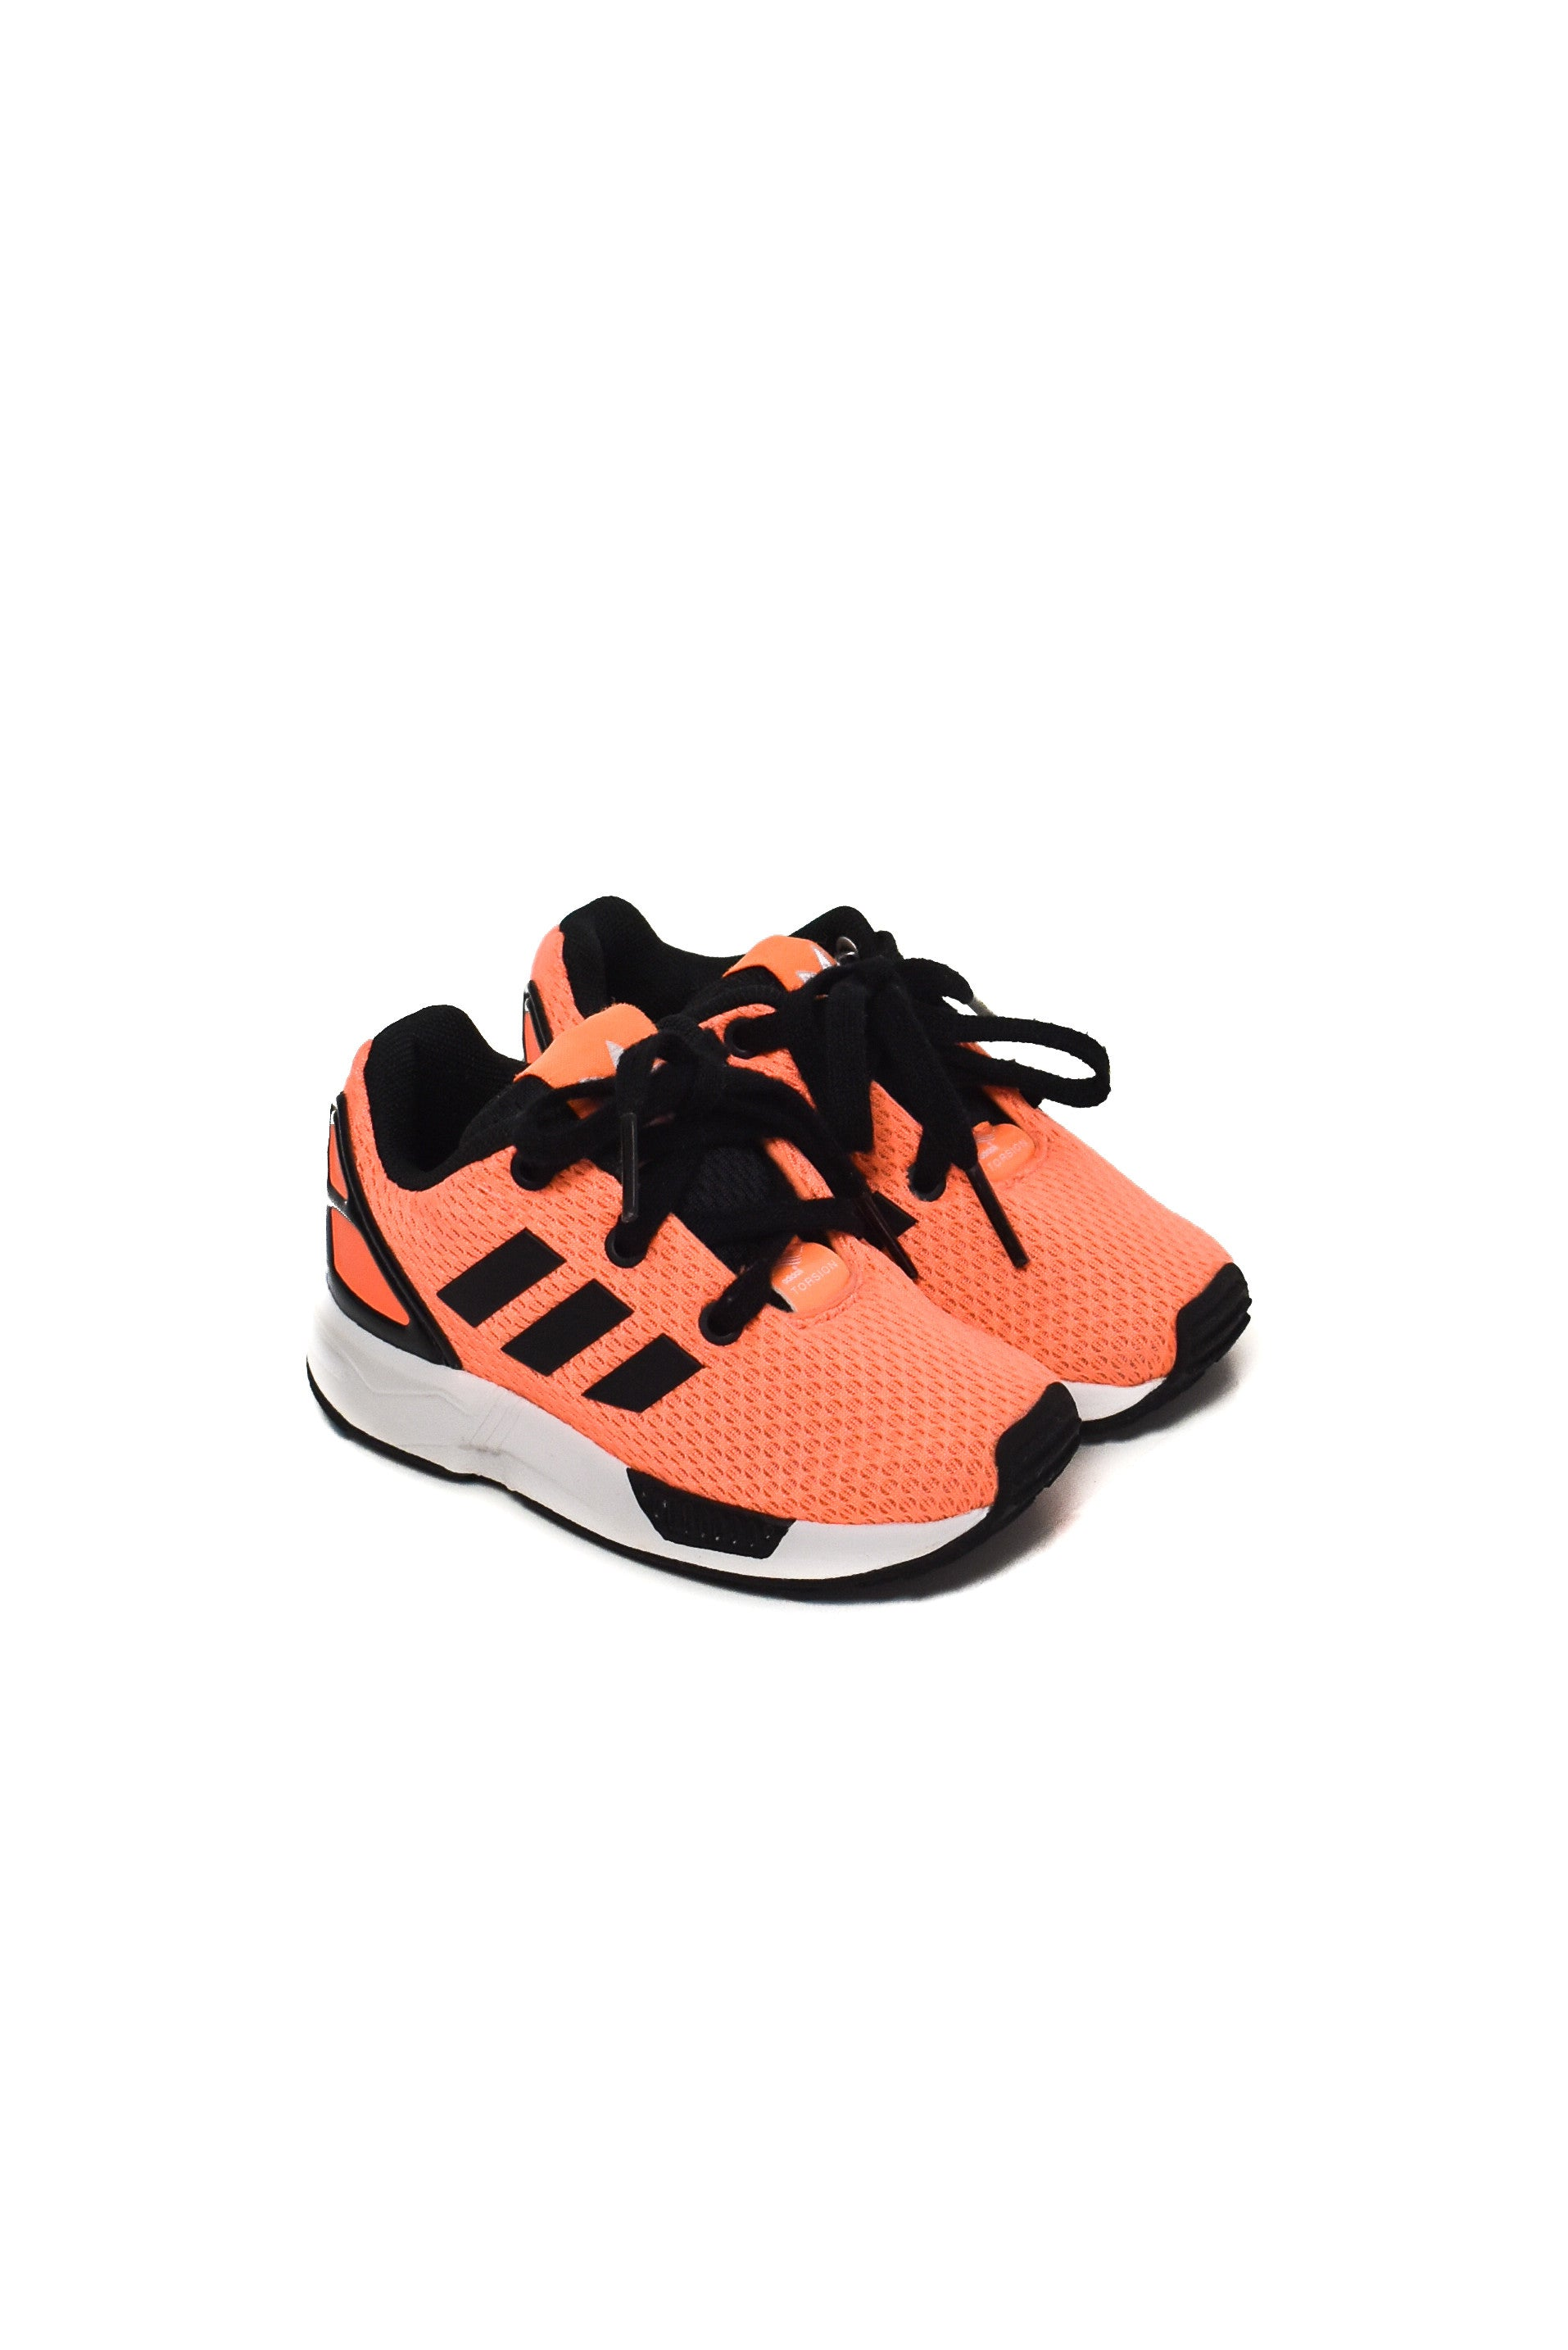 10004150 Adidas Baby~Shoes 12-18M (US 5.5), Adidas Retykle | Online Baby & Kids Clothing Hong Kong